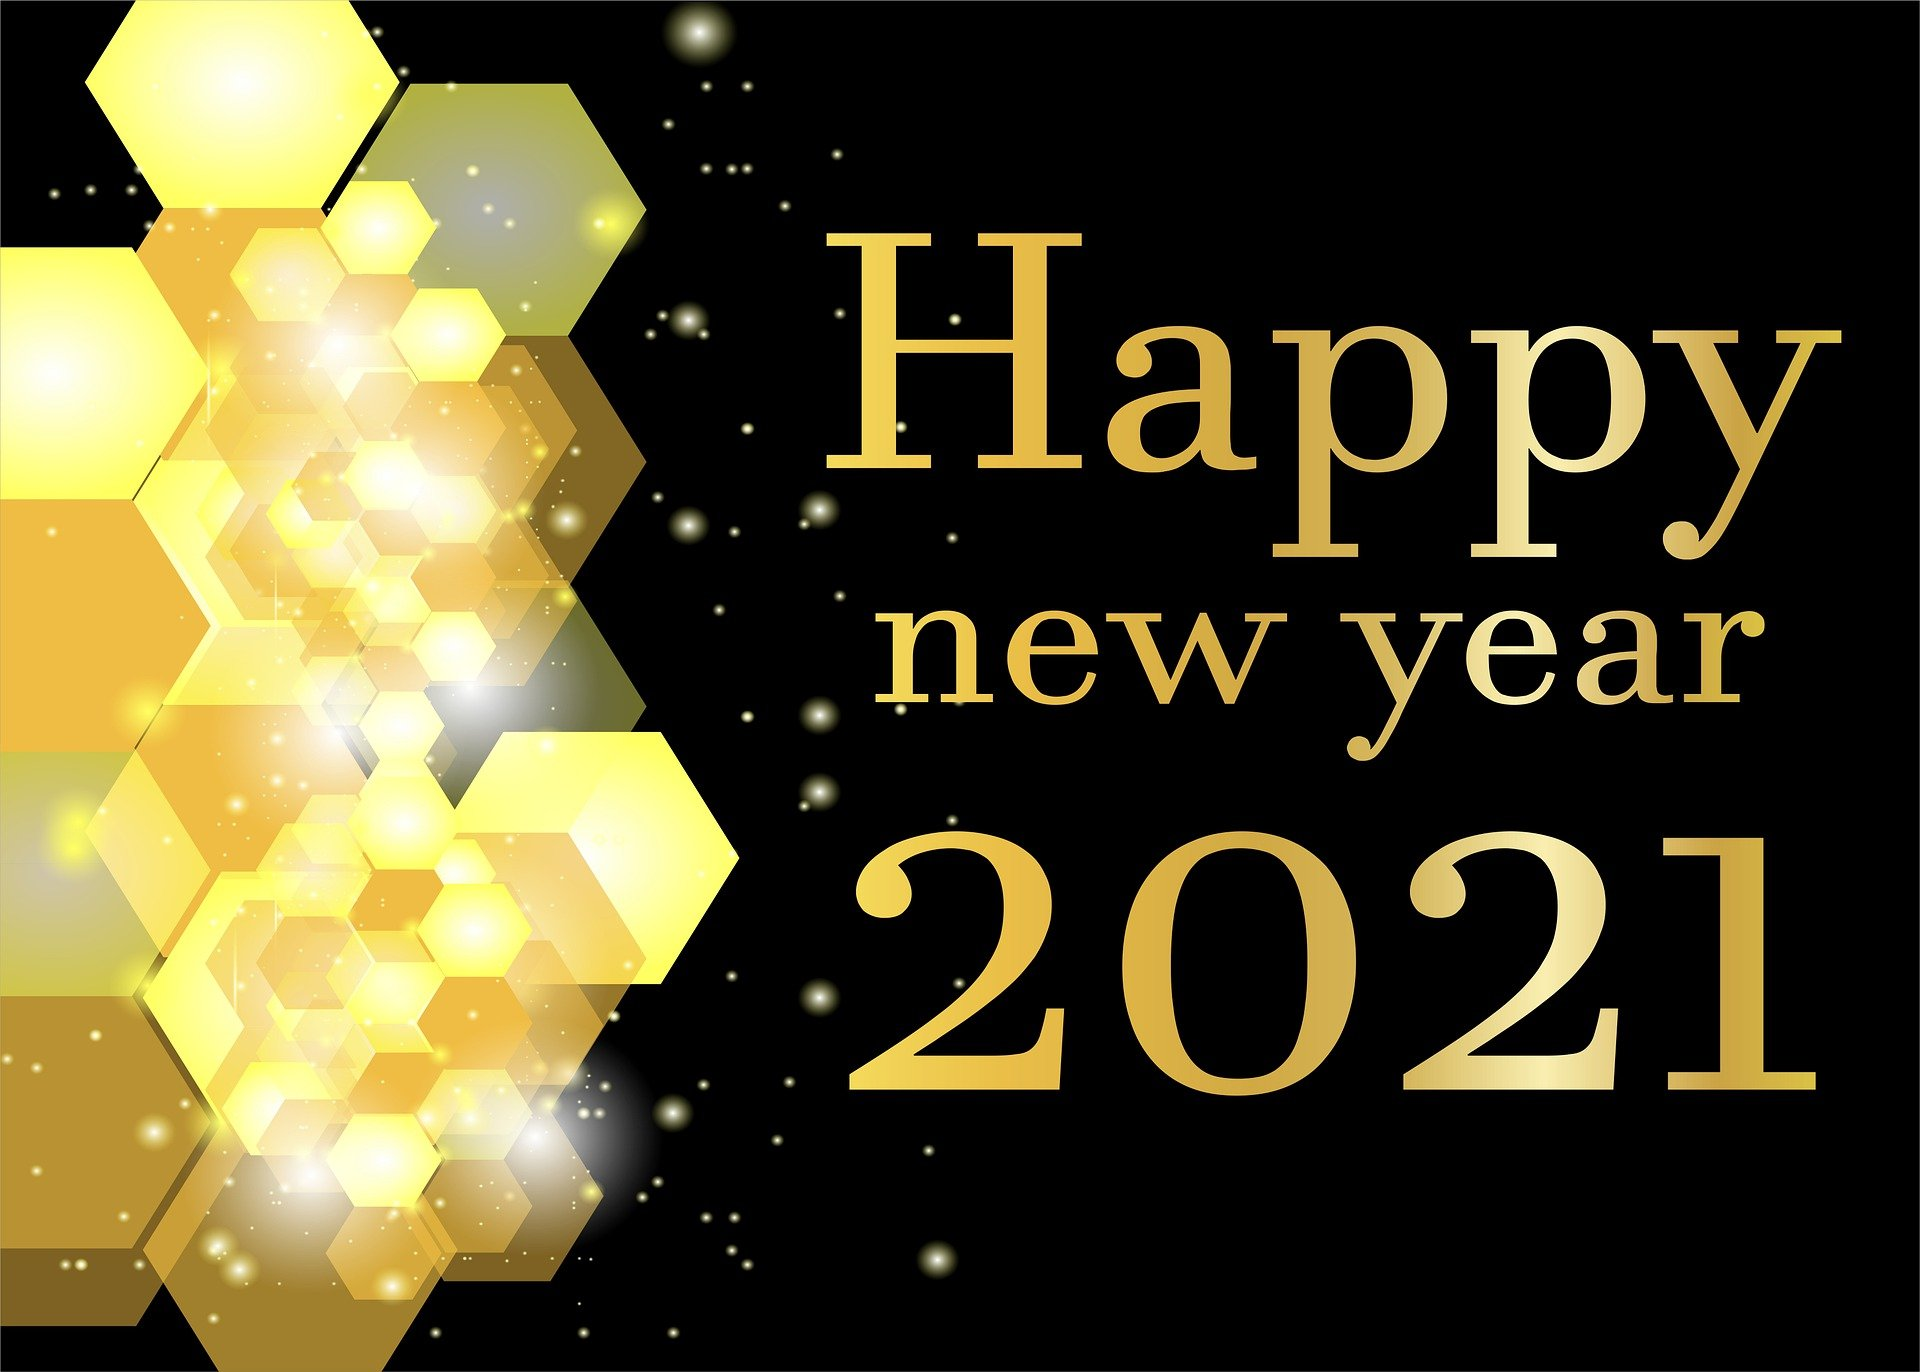 Gold Happy New Year 2021 on black background with overlapping hexagons on the left creating a sparkling look.